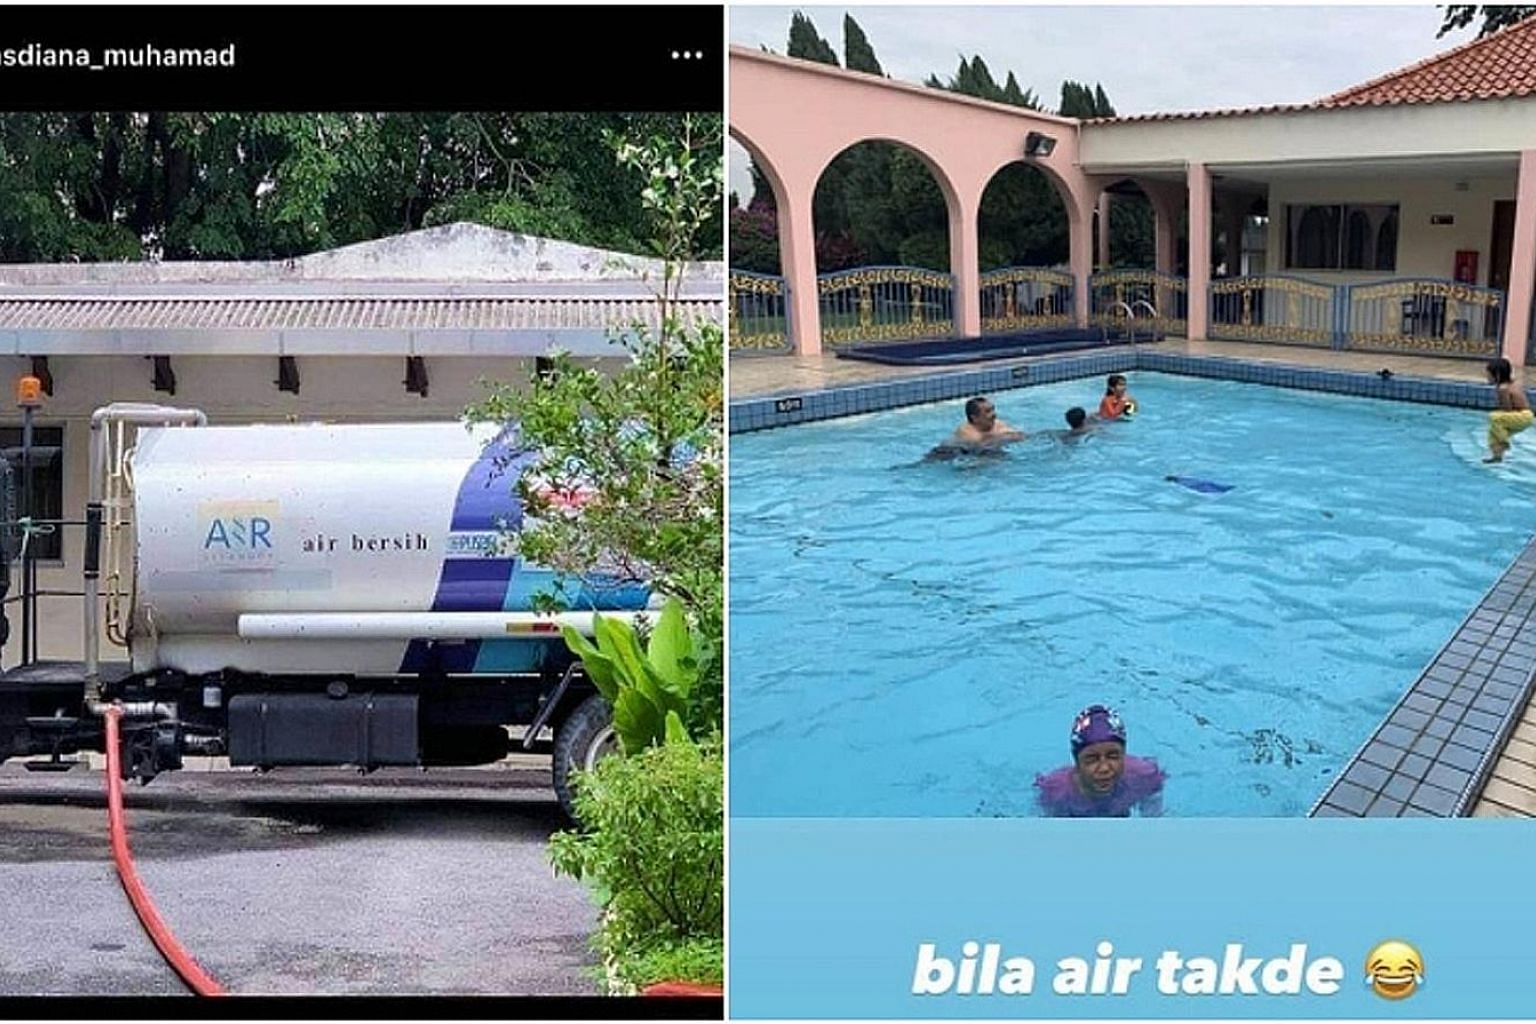 A screenshot of pictures said to be taken from Datin Seri Masdiana Muhamad's Instagram account showing a water tanker in front of the family home and their swimming pool. PHOTO: MASDIANA MUHAMAD/ INSTAGRAM